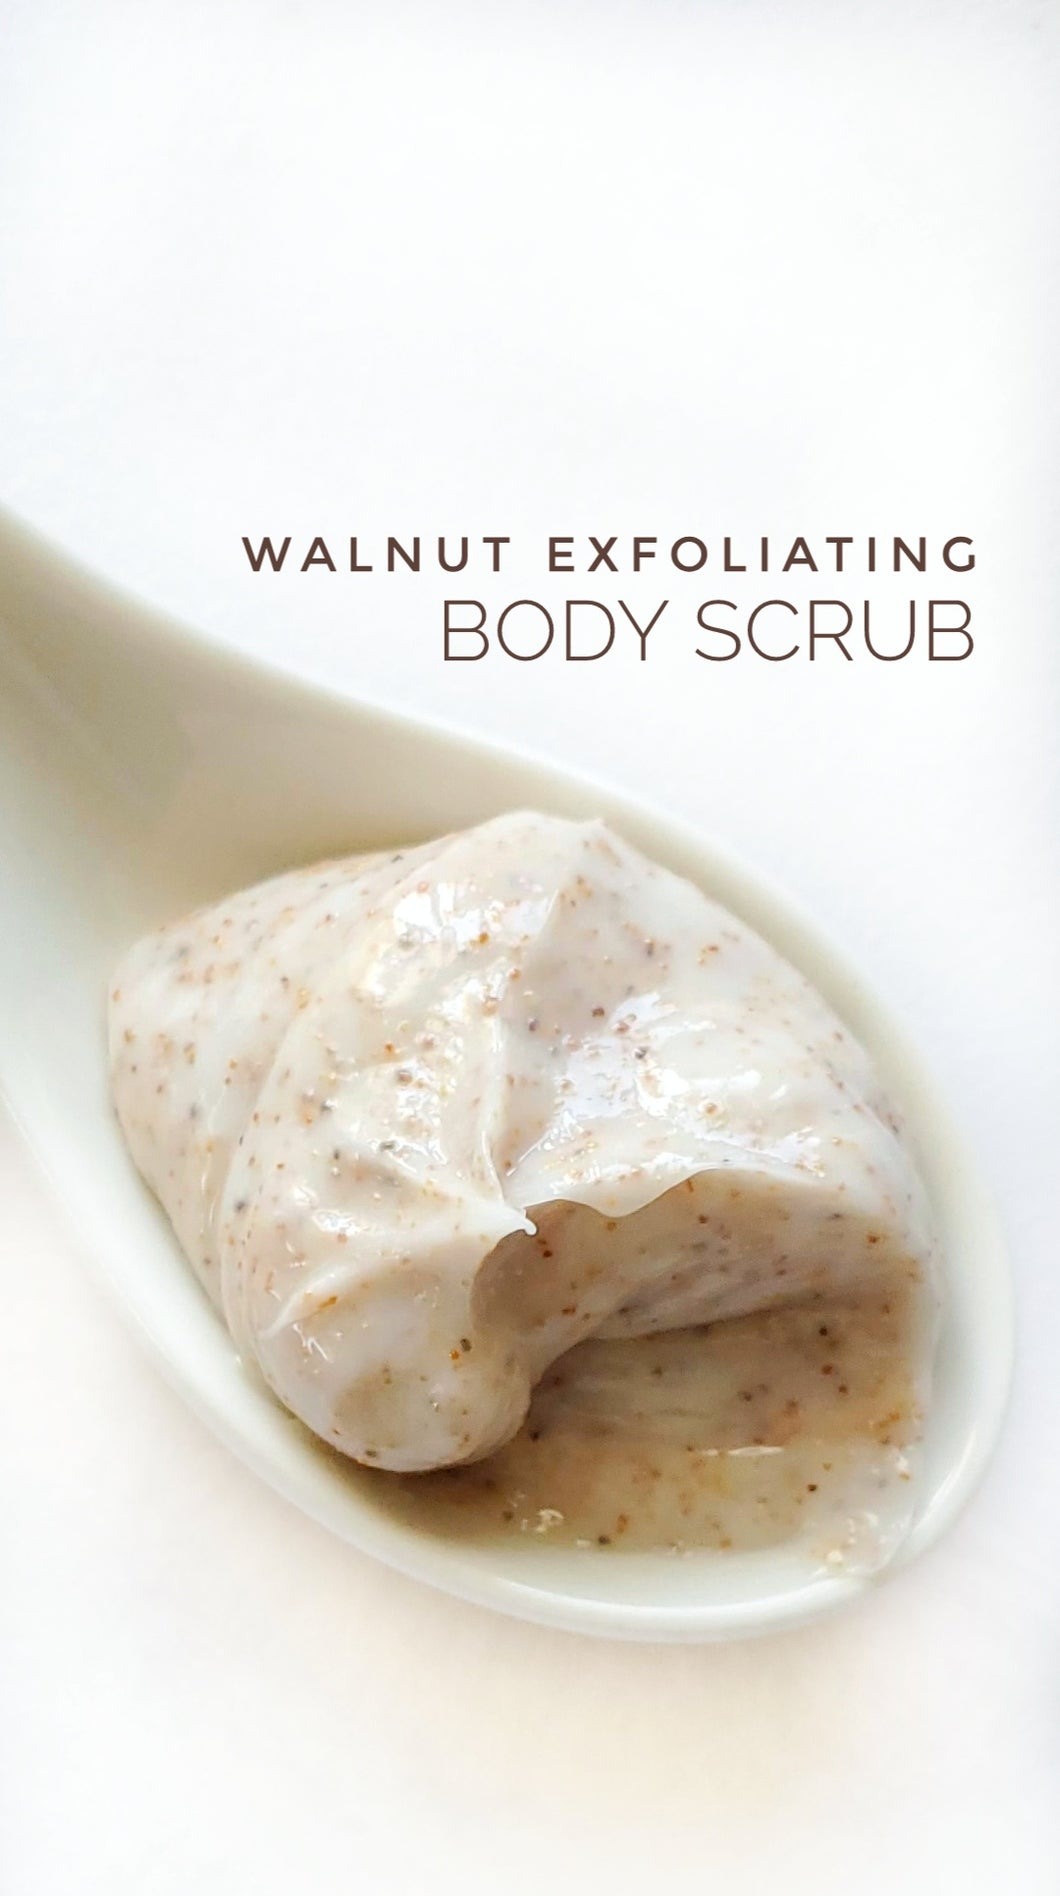 Walnut Exfoliating Body Scrub 8oz